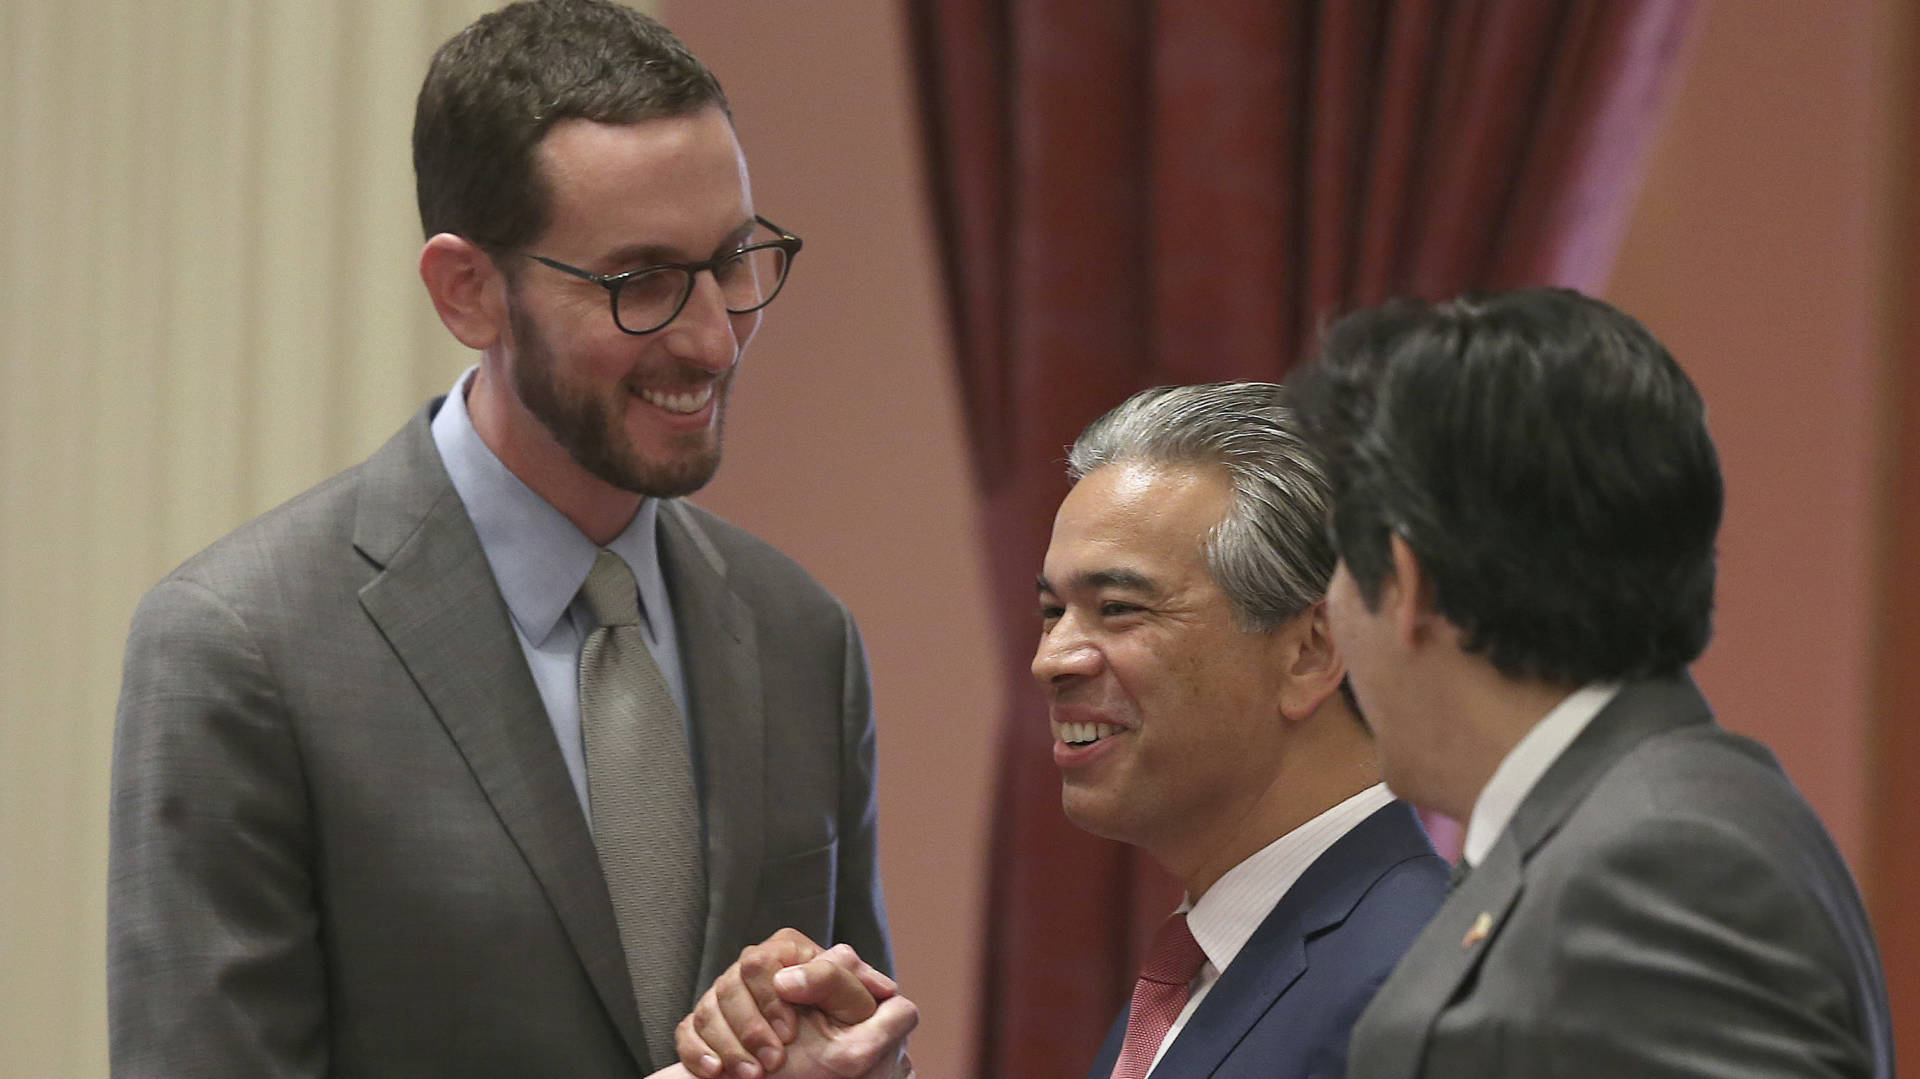 State Sen. Scott Wiener, D-San Francisco, left, receives congratulations from Assemblyman Rob Bonta, D-Alameda, center, and Sen. Kevin de Leon, D-Los Angeles, right, after passage of the bill Friday in Sacramento.  Rich Pedroncelli/AP